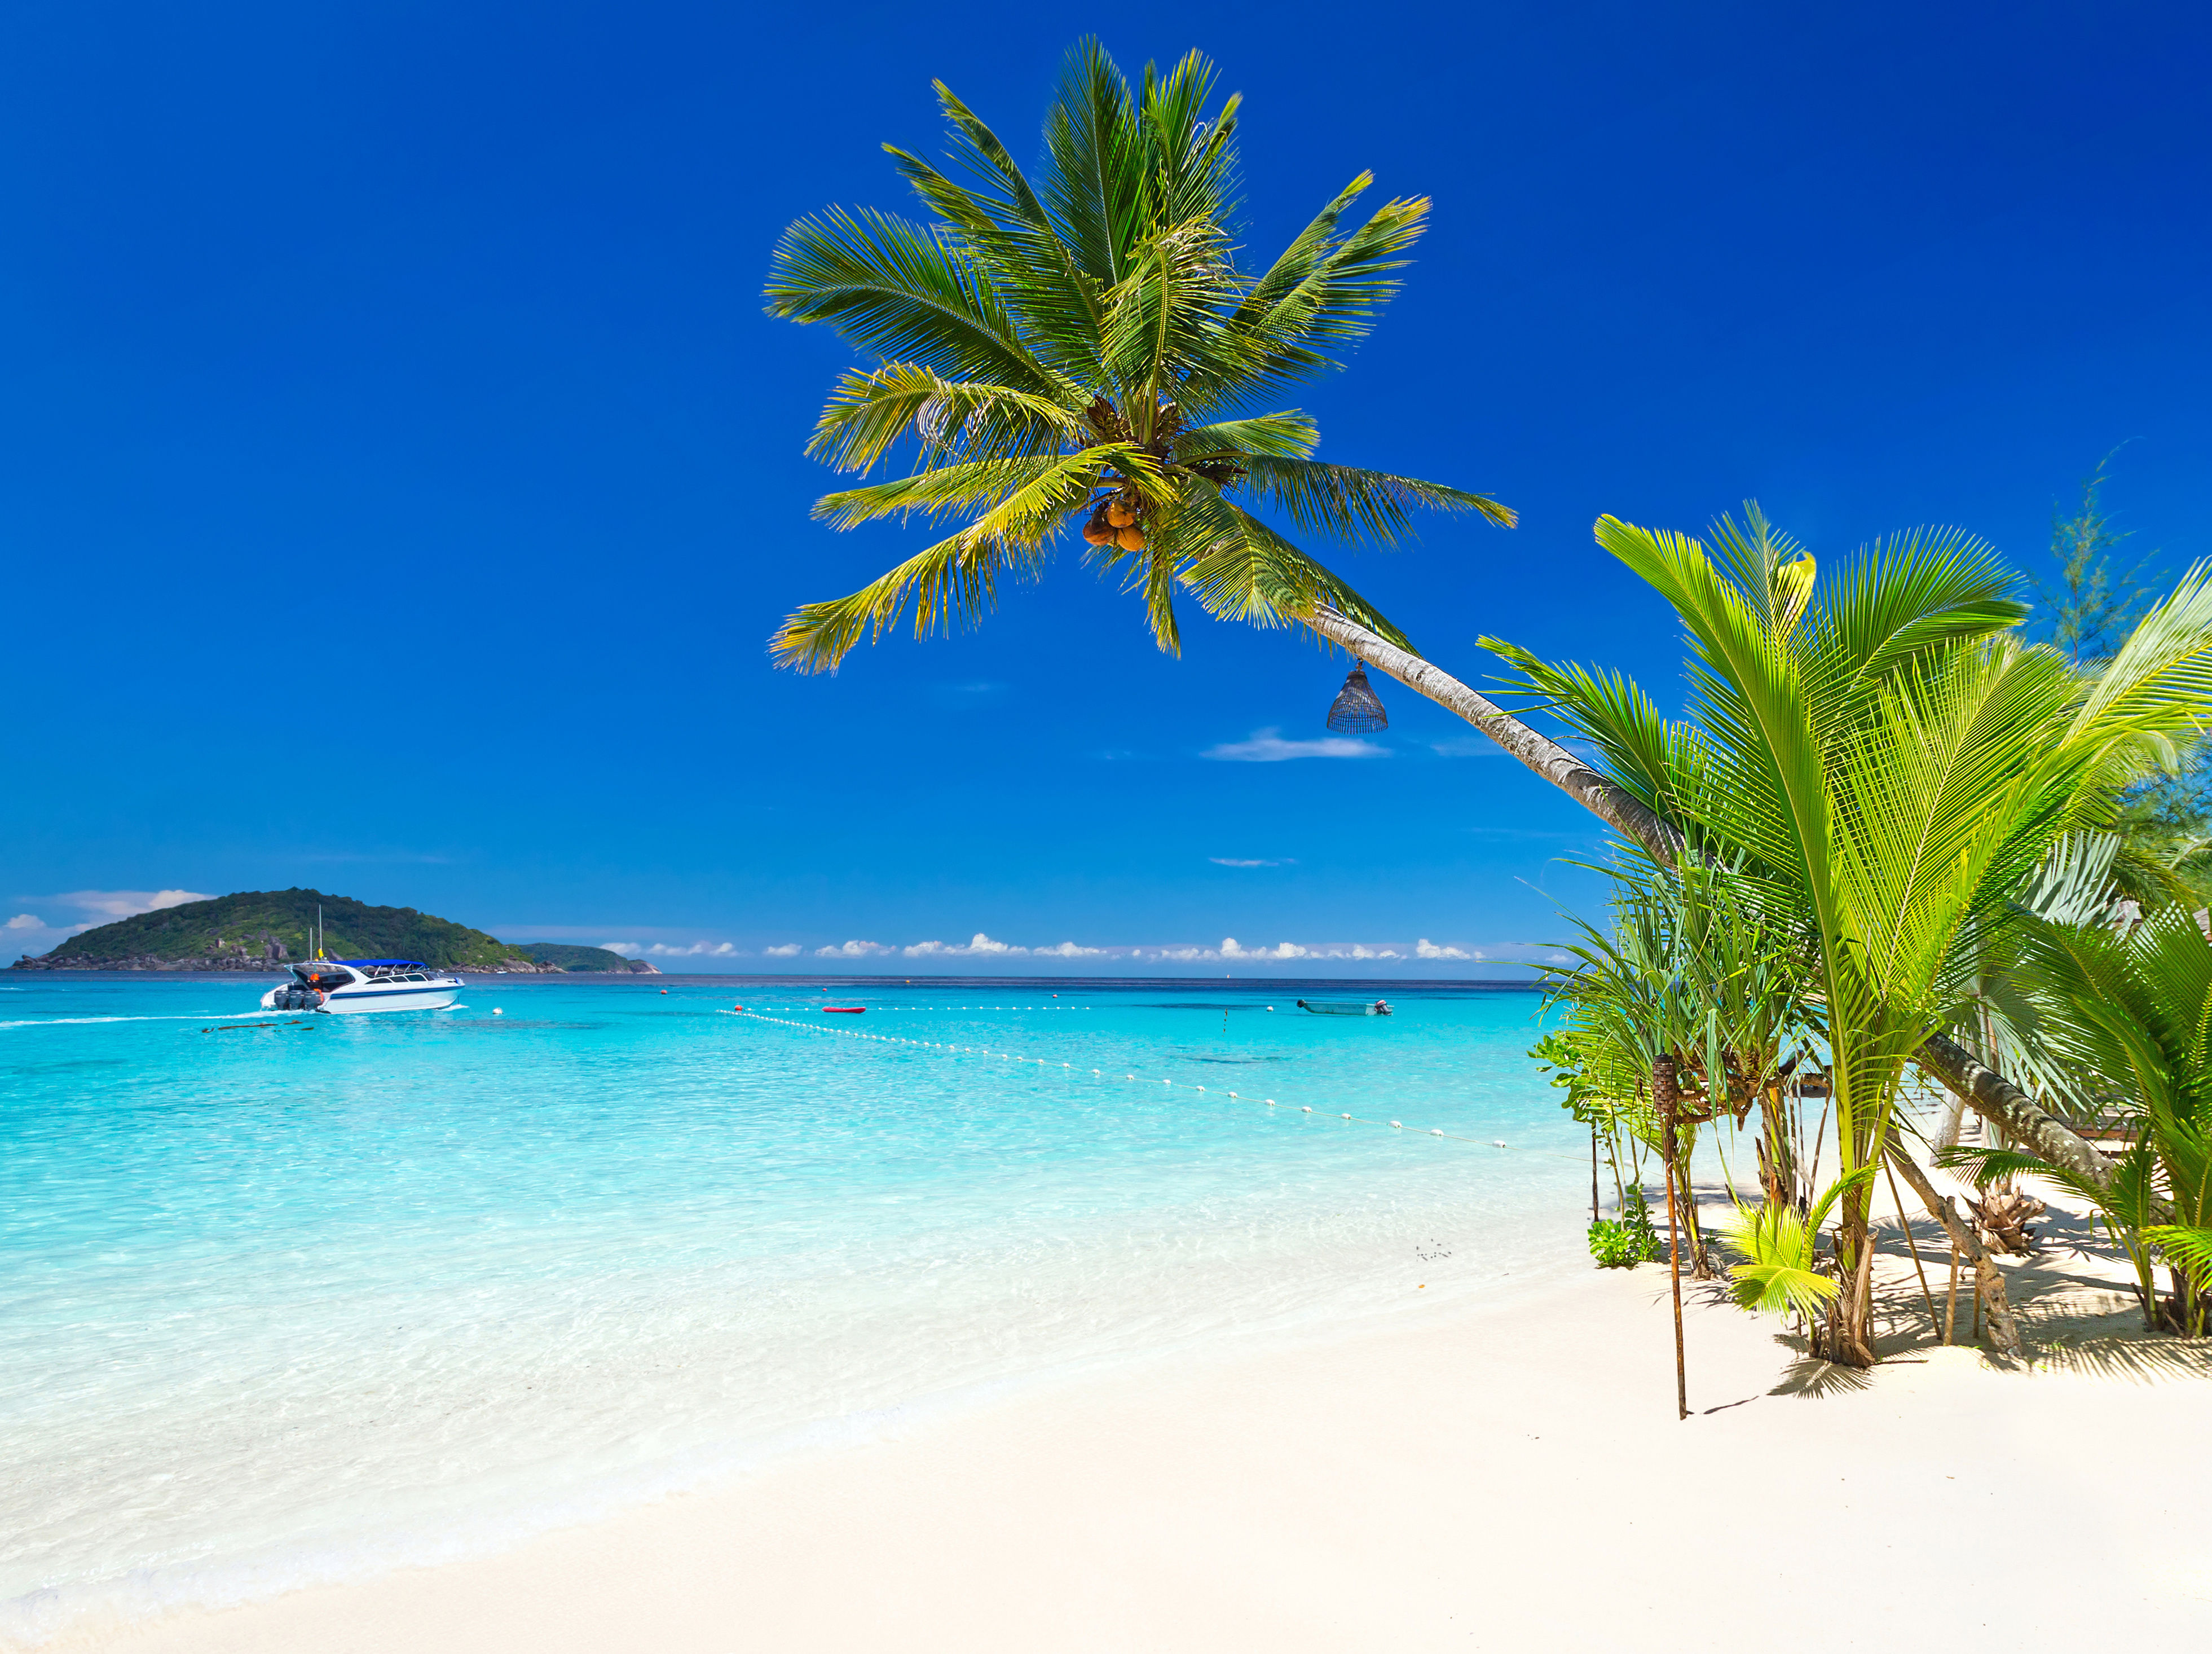 Palm tree overhanging white beach next to turquoise waters and islands in Jamaica.